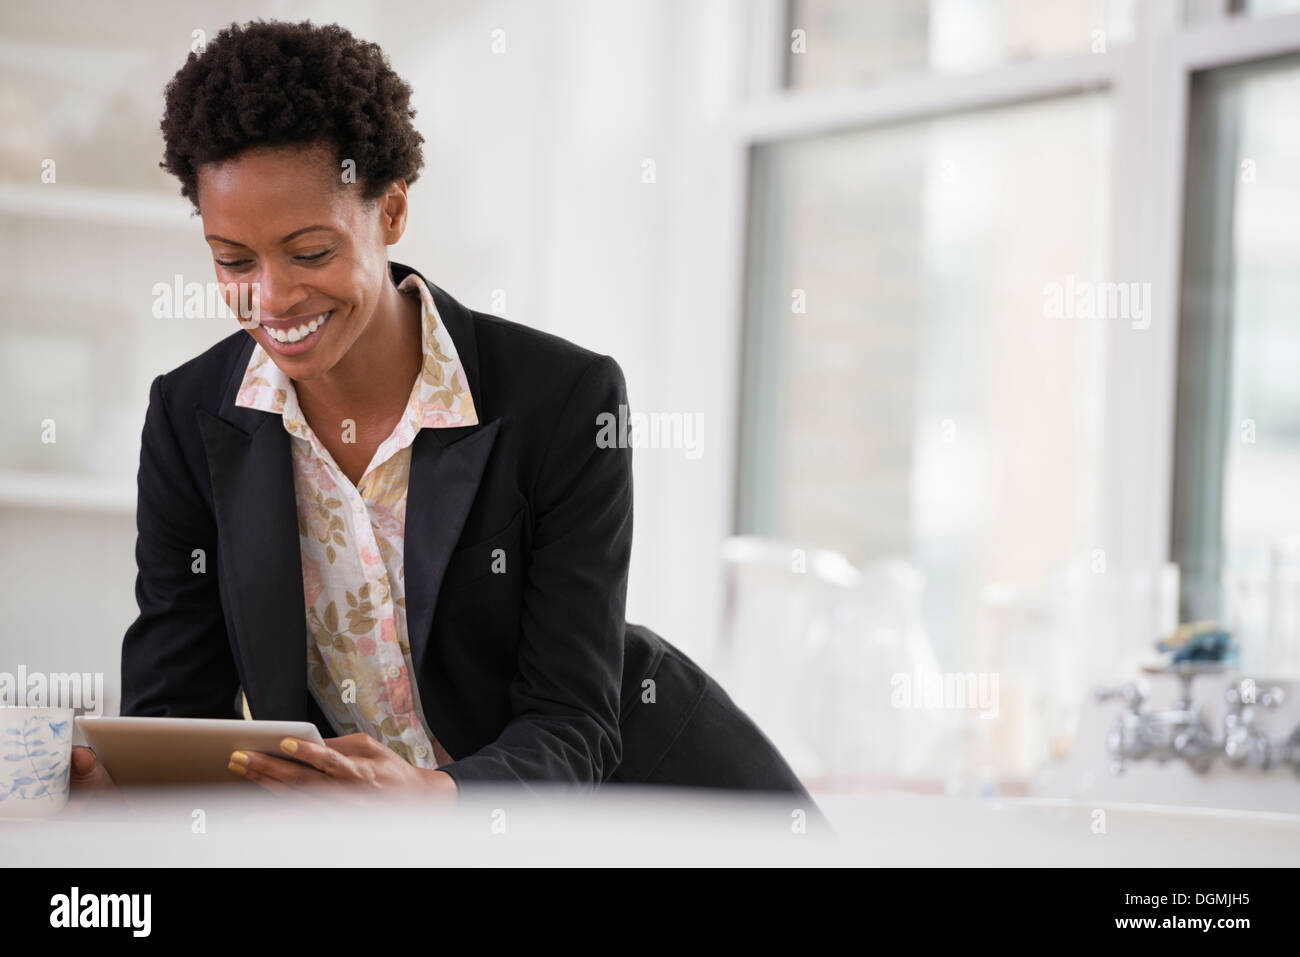 Business people. A woman in a black jacket using a digital tablet. - Stock Image